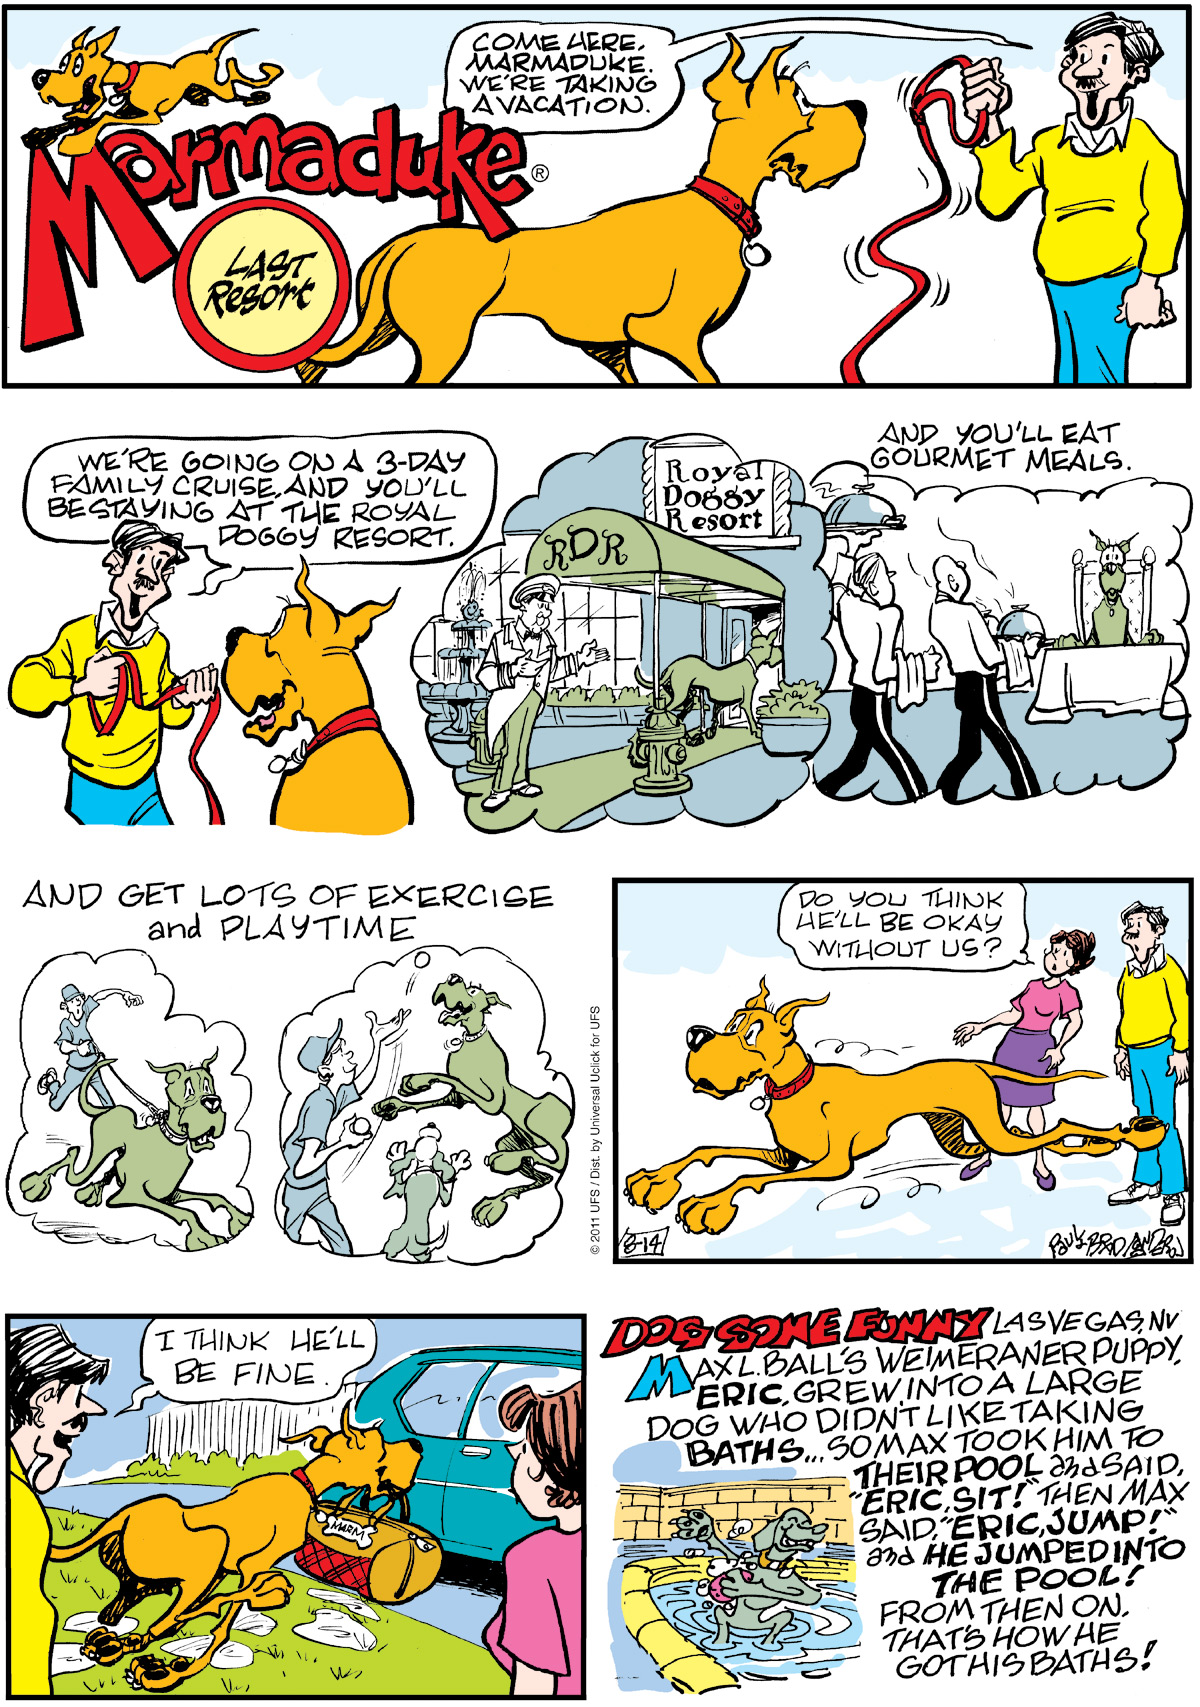 Phil: Come here, Marmaduke. We're taking a vacation. We're going on a 3-day family cruise and you;ll be staying at the Royal Doggy Resort. And you'll eat gourmet meals. And get lots of exercise and playtime. 